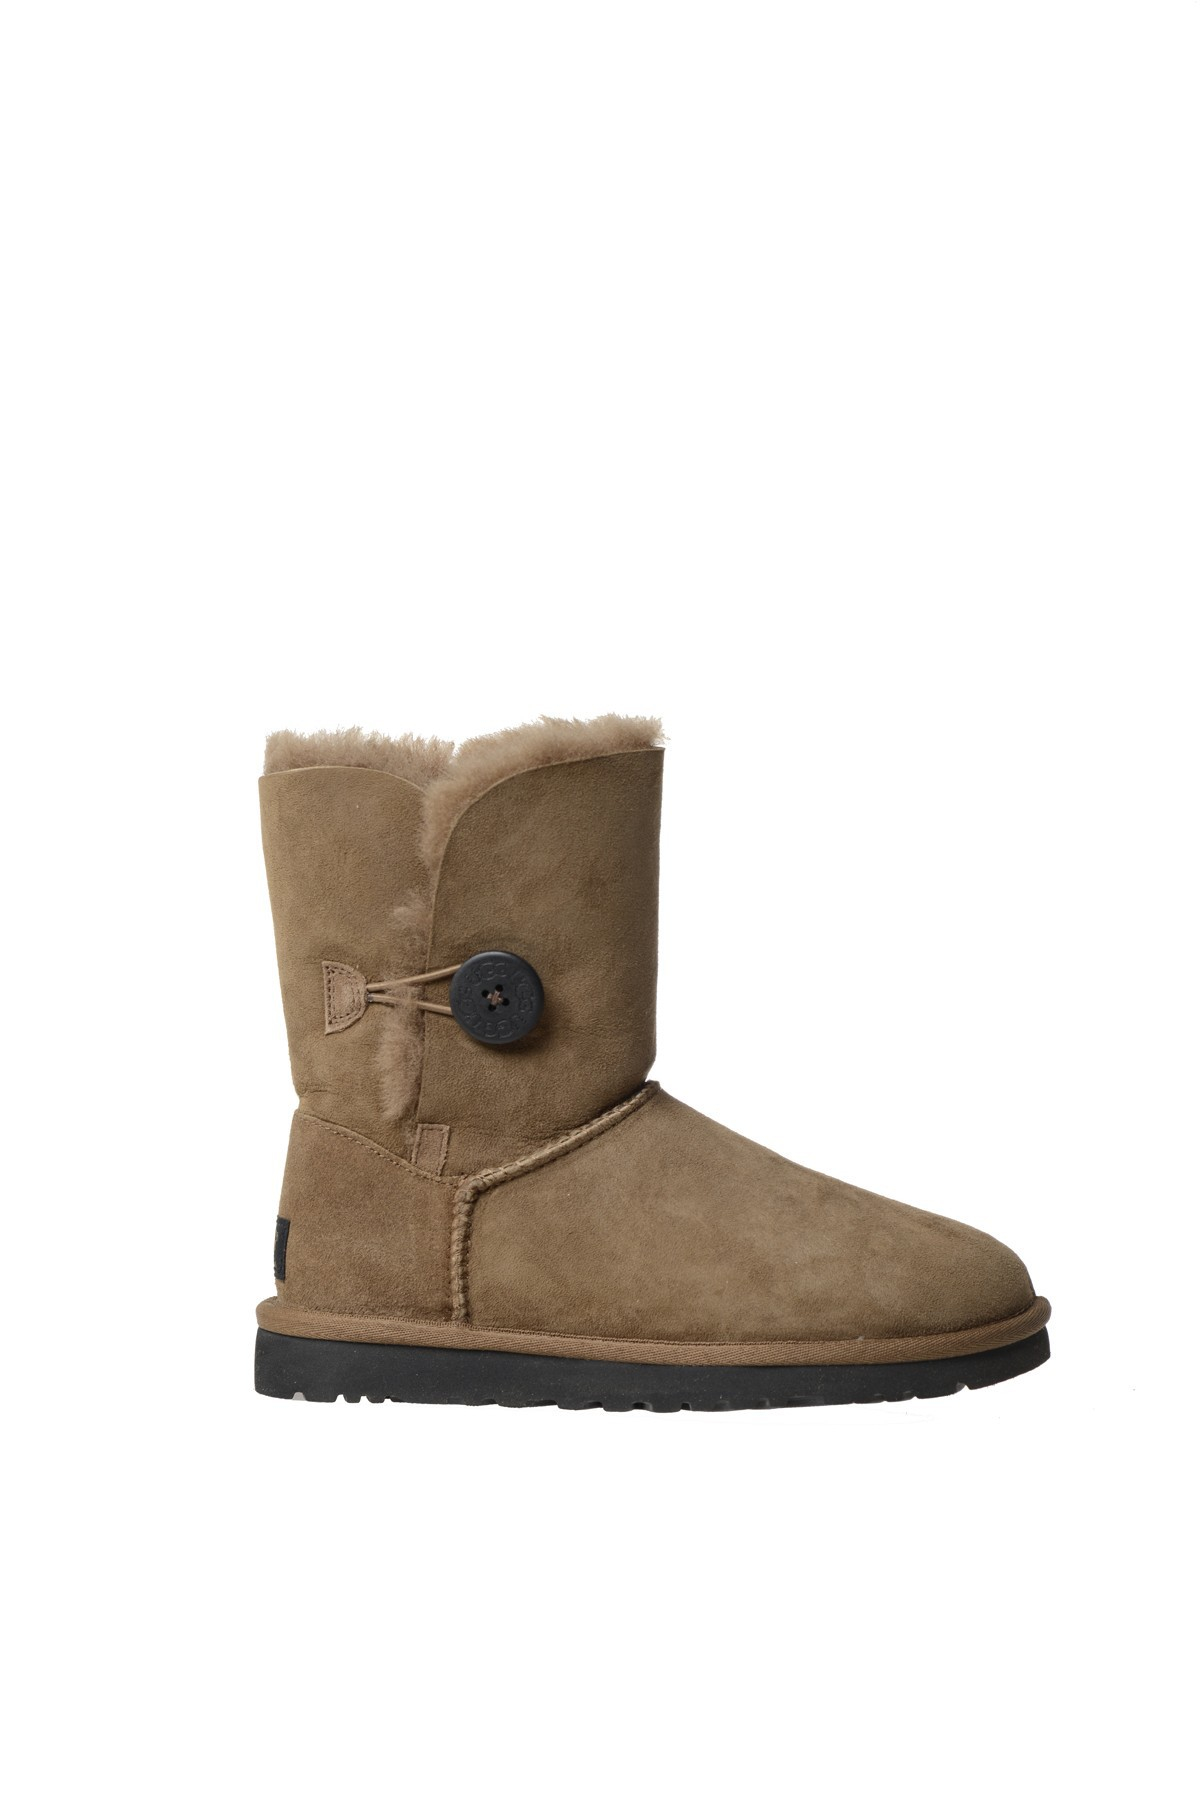 Uggs With Buttons On Side Ugg Boots With ...